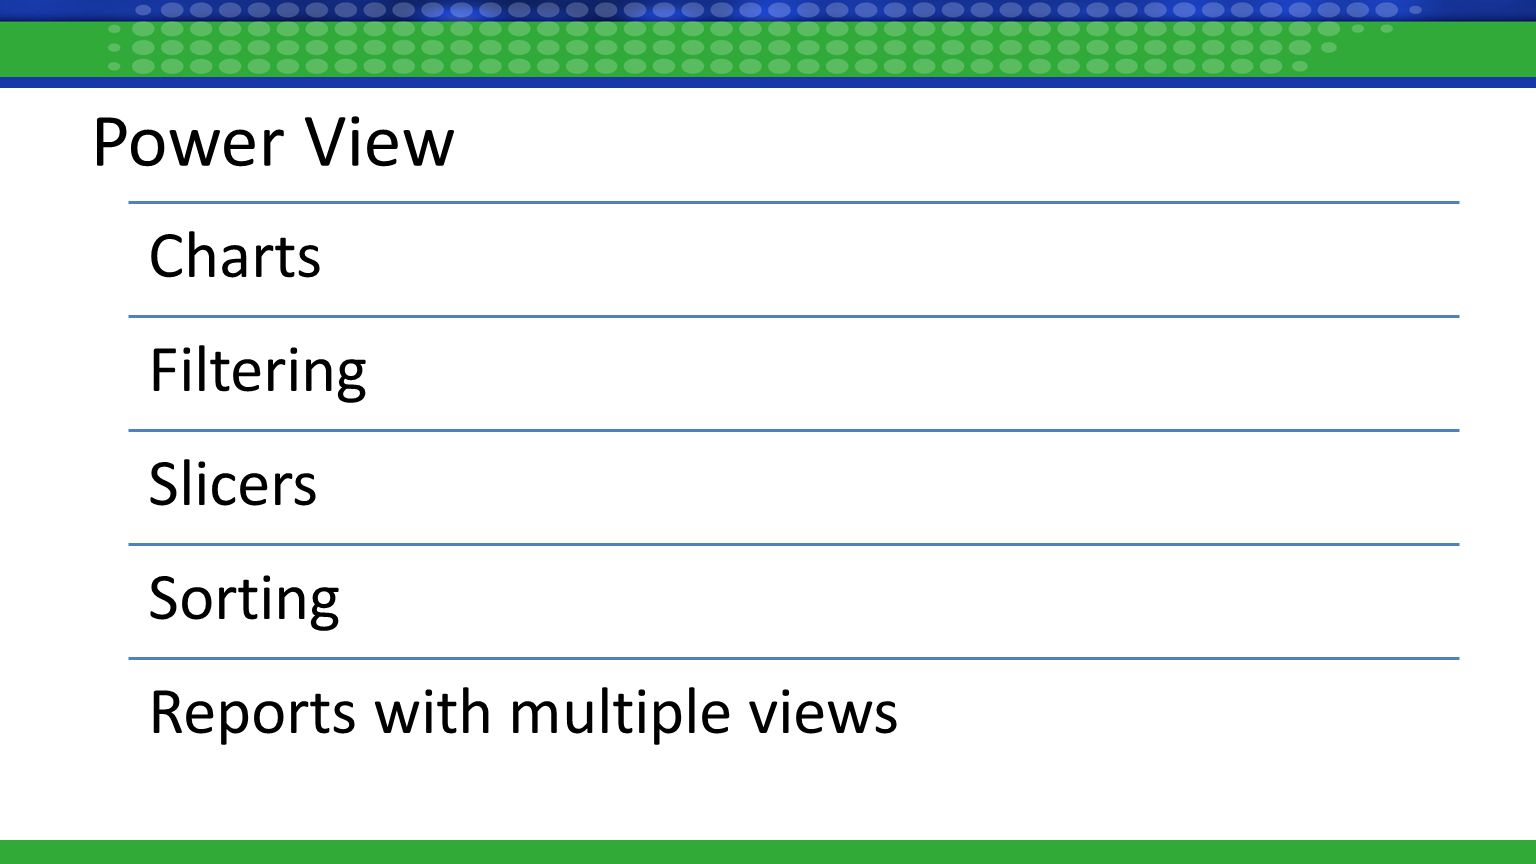 Power View Charts Filtering Slicers Sorting Reports with multiple views